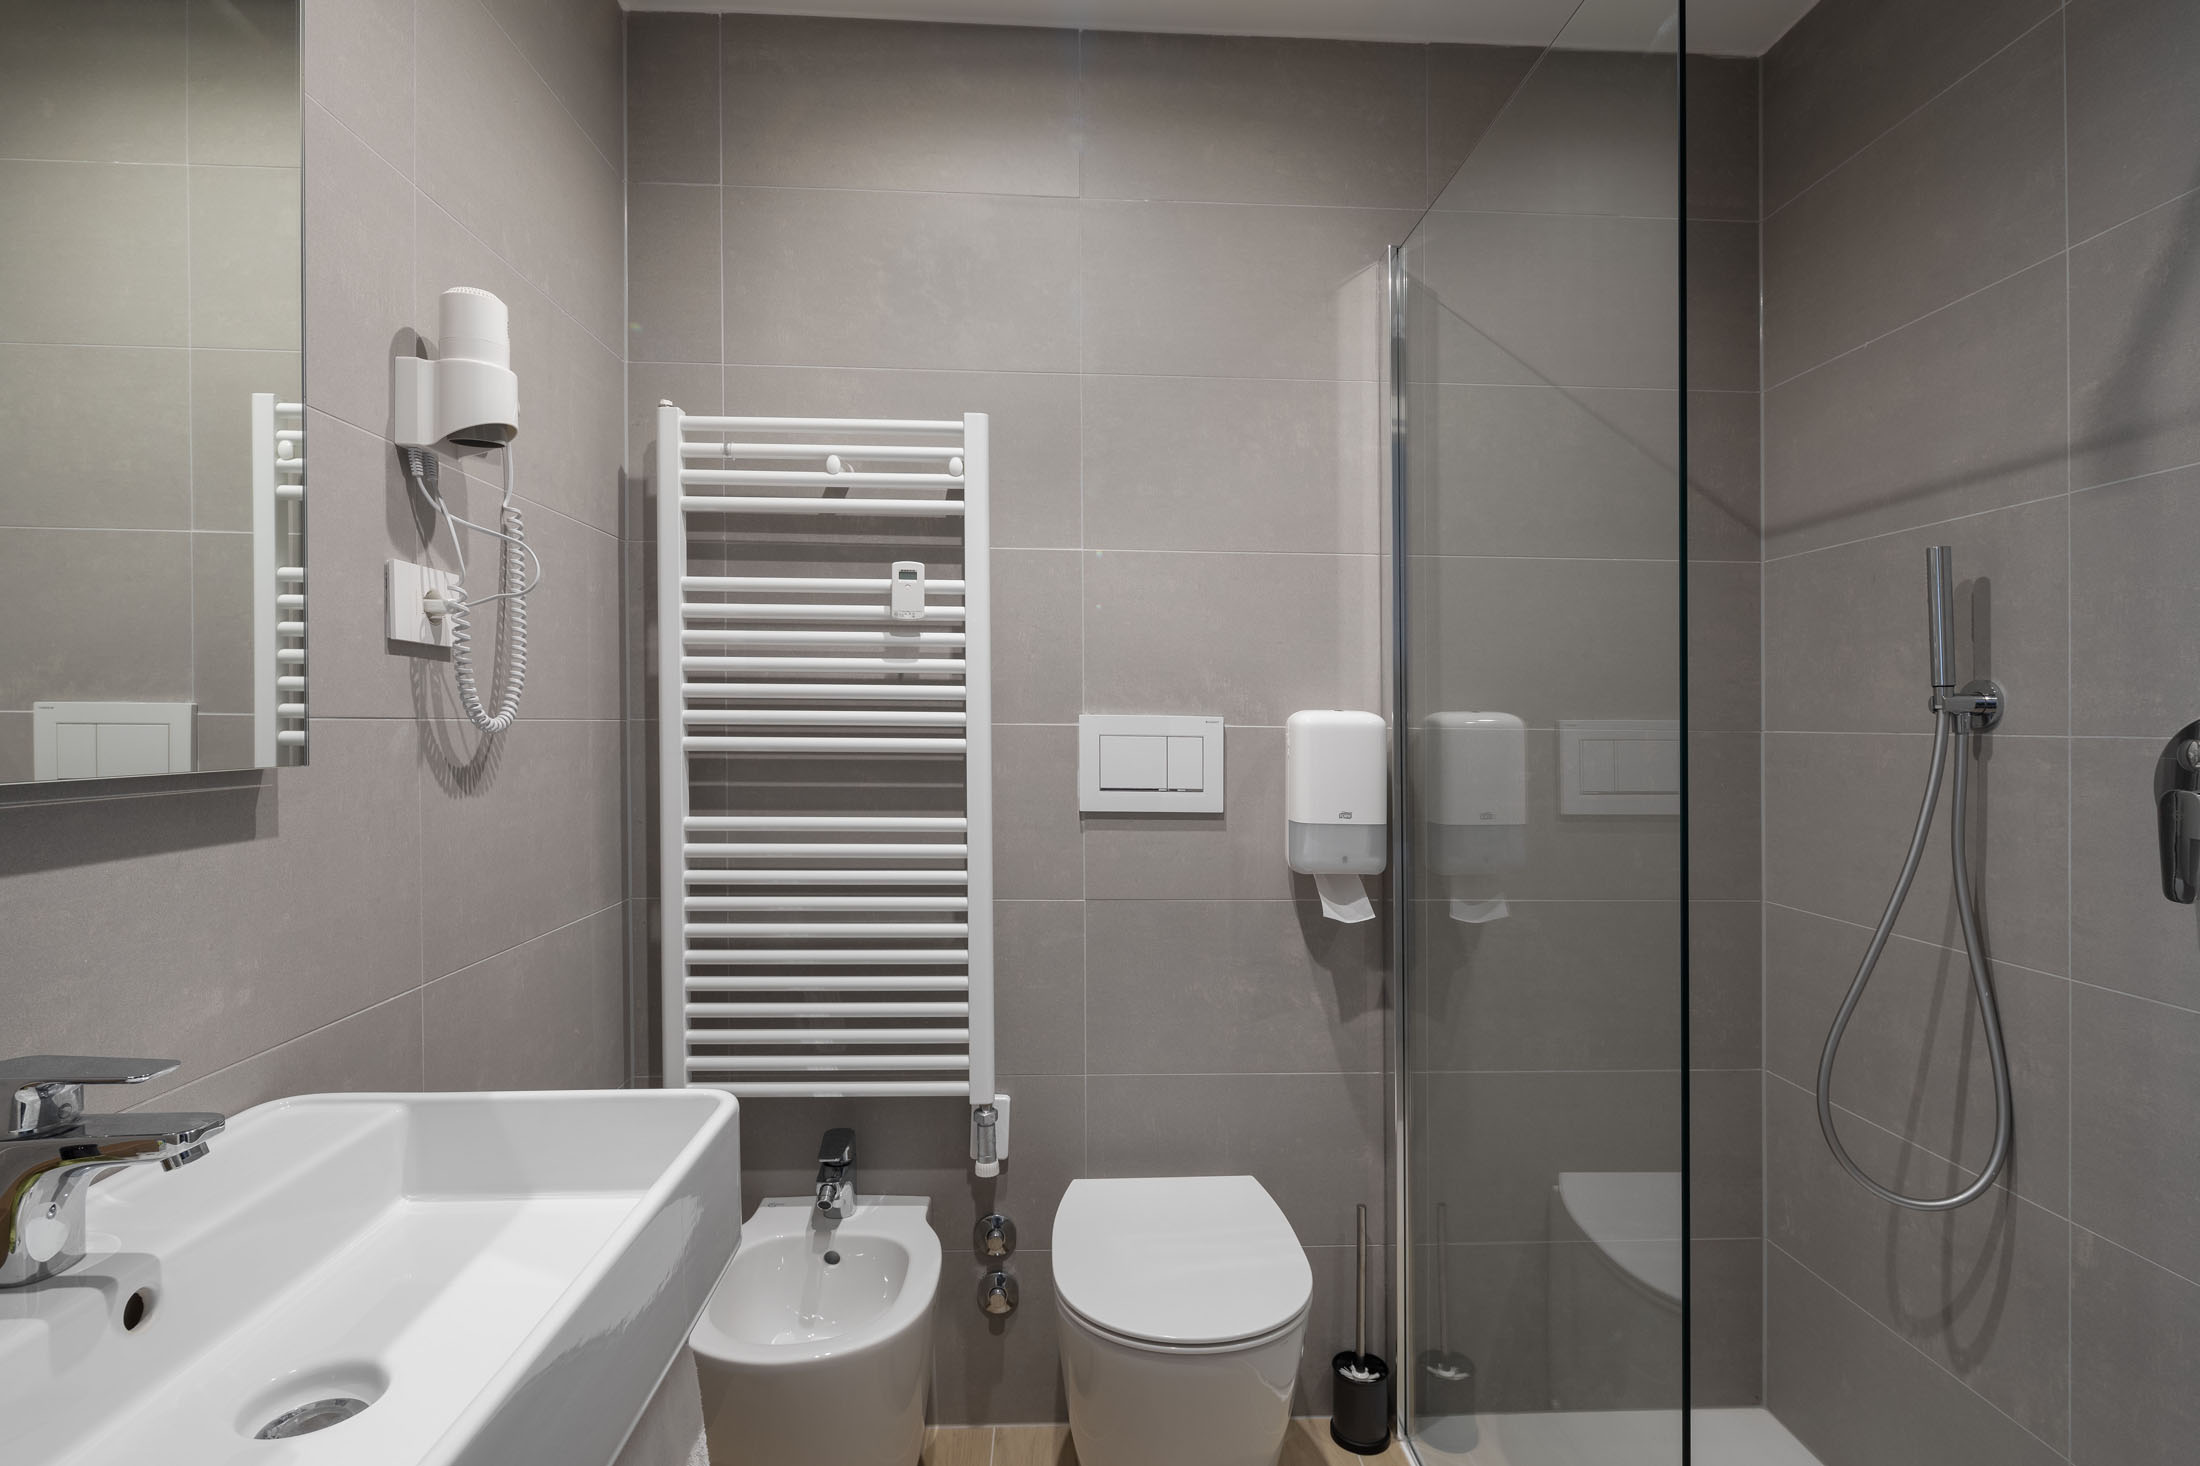 https://www.in-lombardia.it/sites/default/files/accomodation/gallery/105682/37632/excelsior_pavia_24.jpg